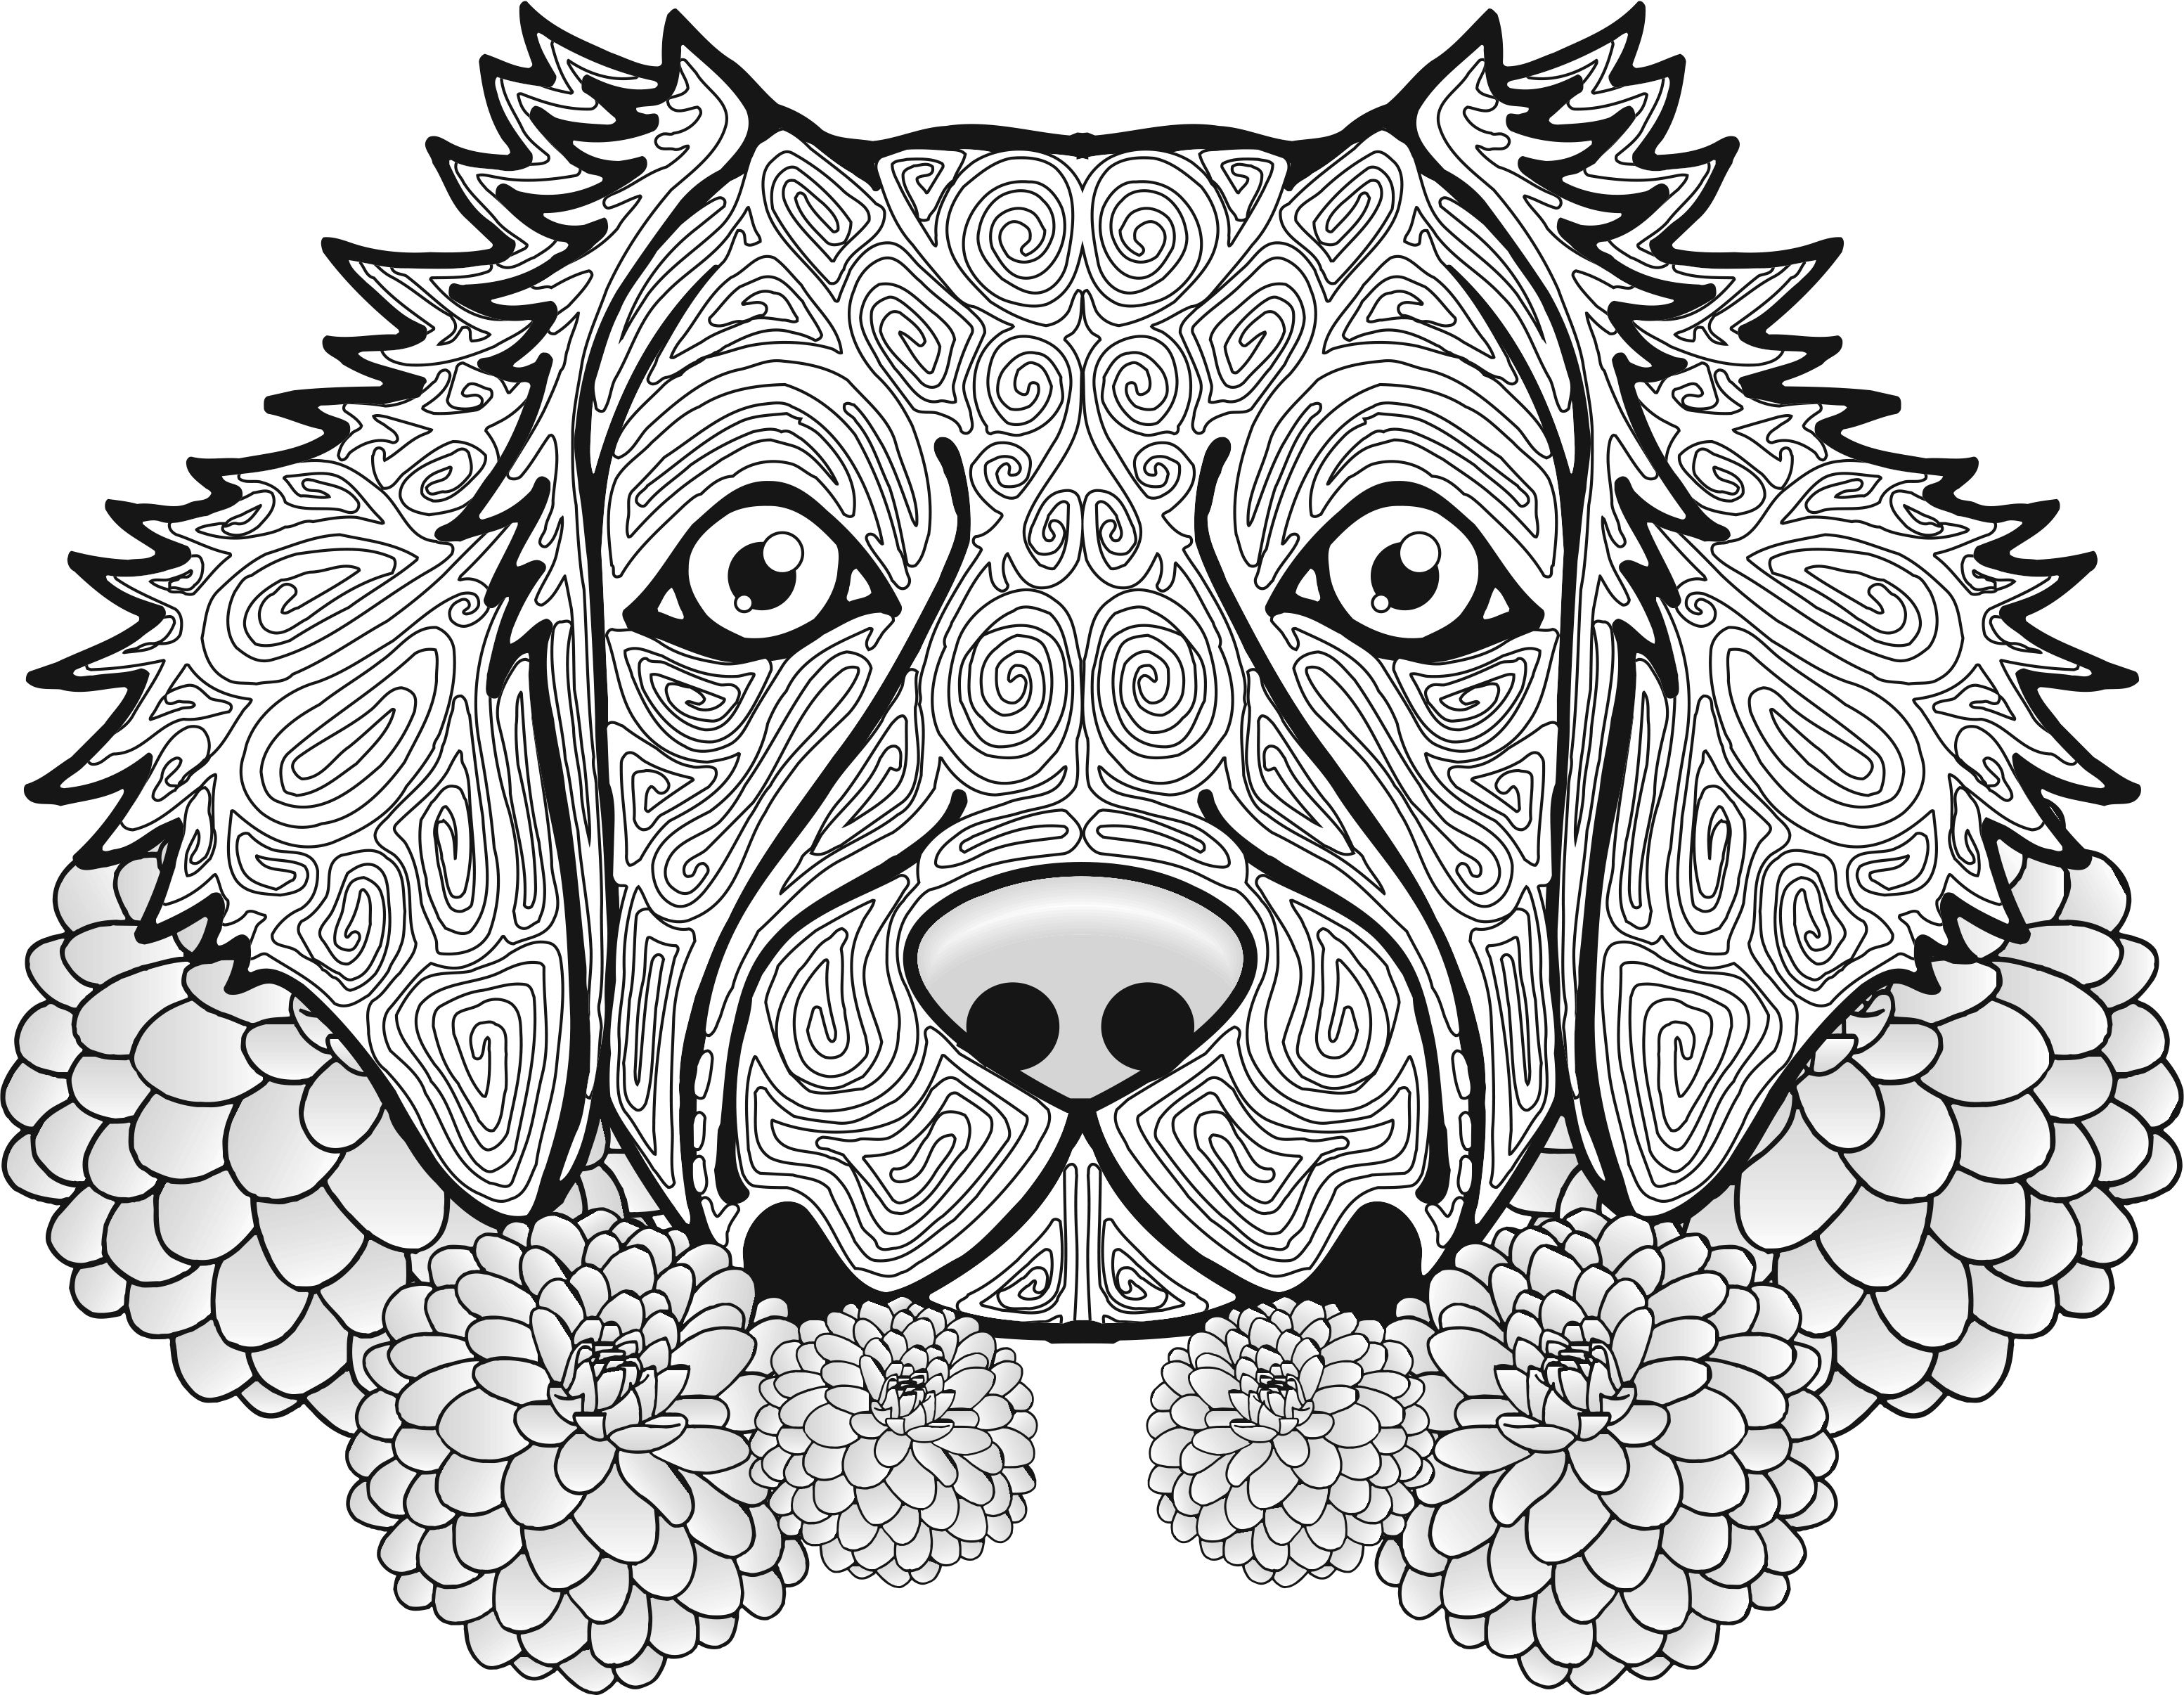 3107x2411 Best Of Dog Mandala Coloring Pages Collection Printable Coloring